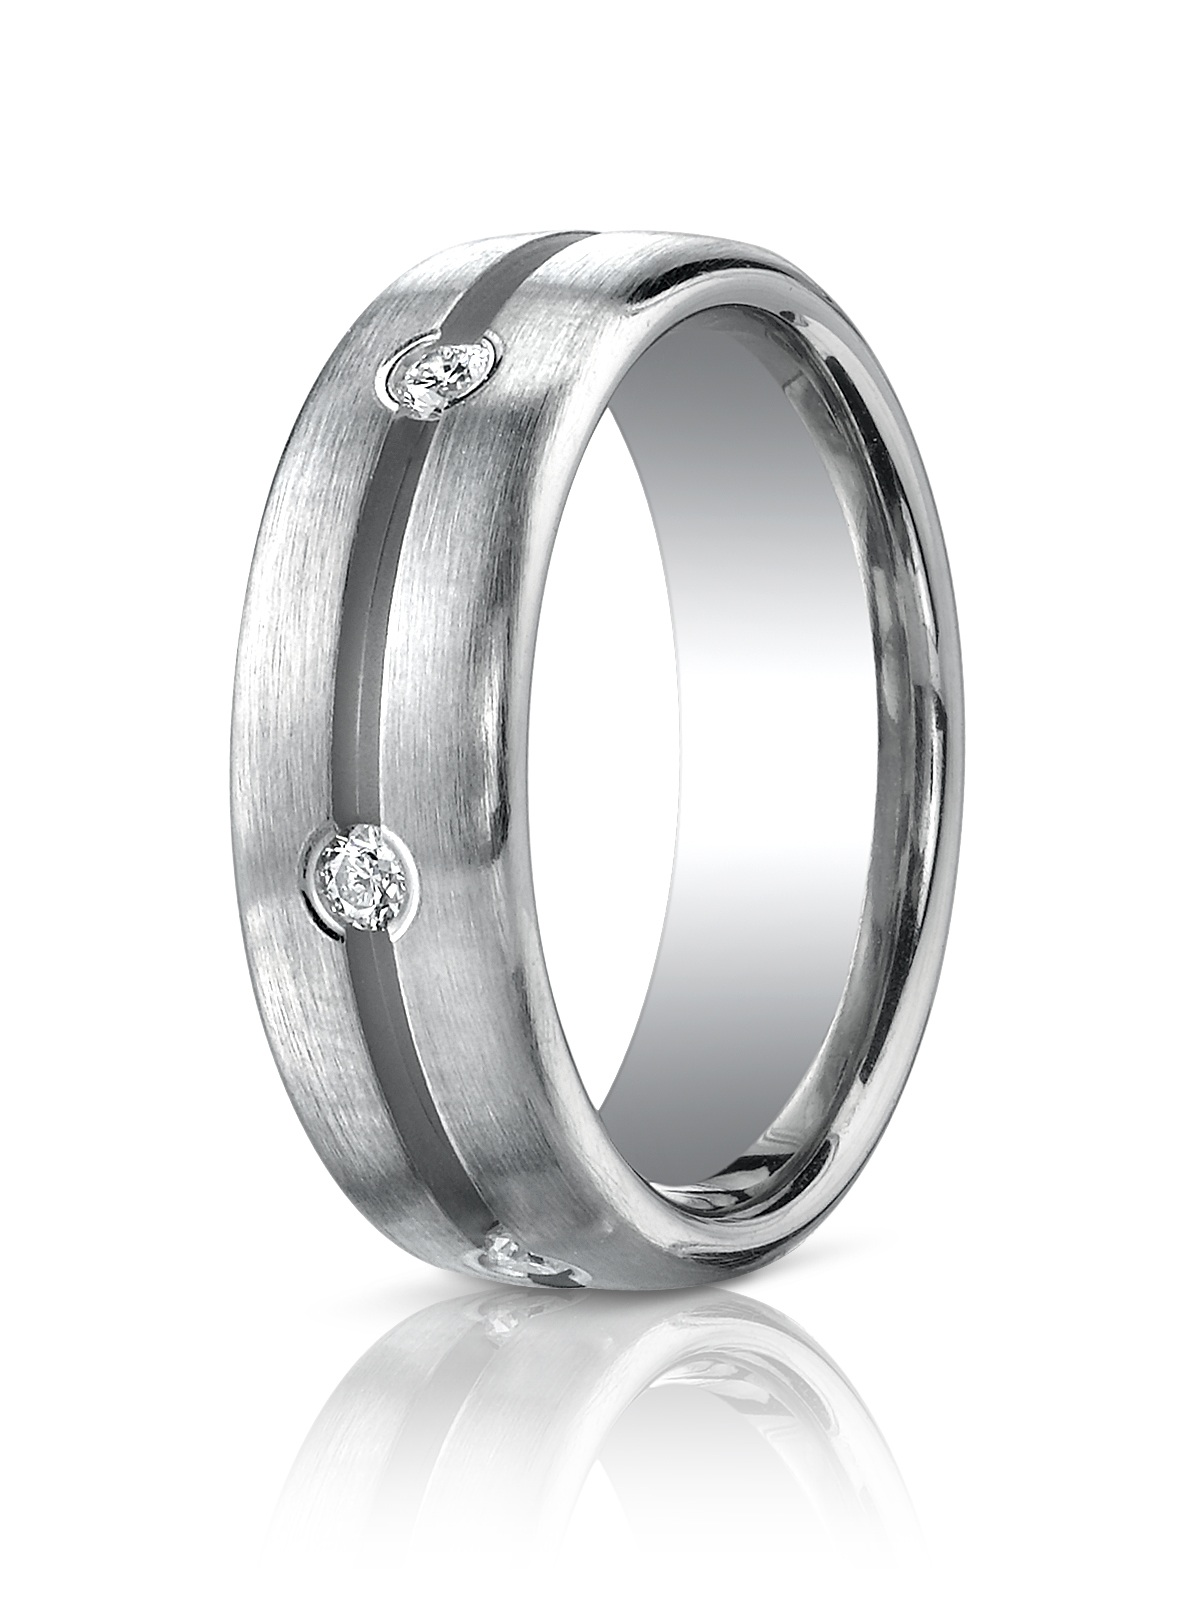 4 platinum wedding band Benchmark Platinum wedding band by Benchmark